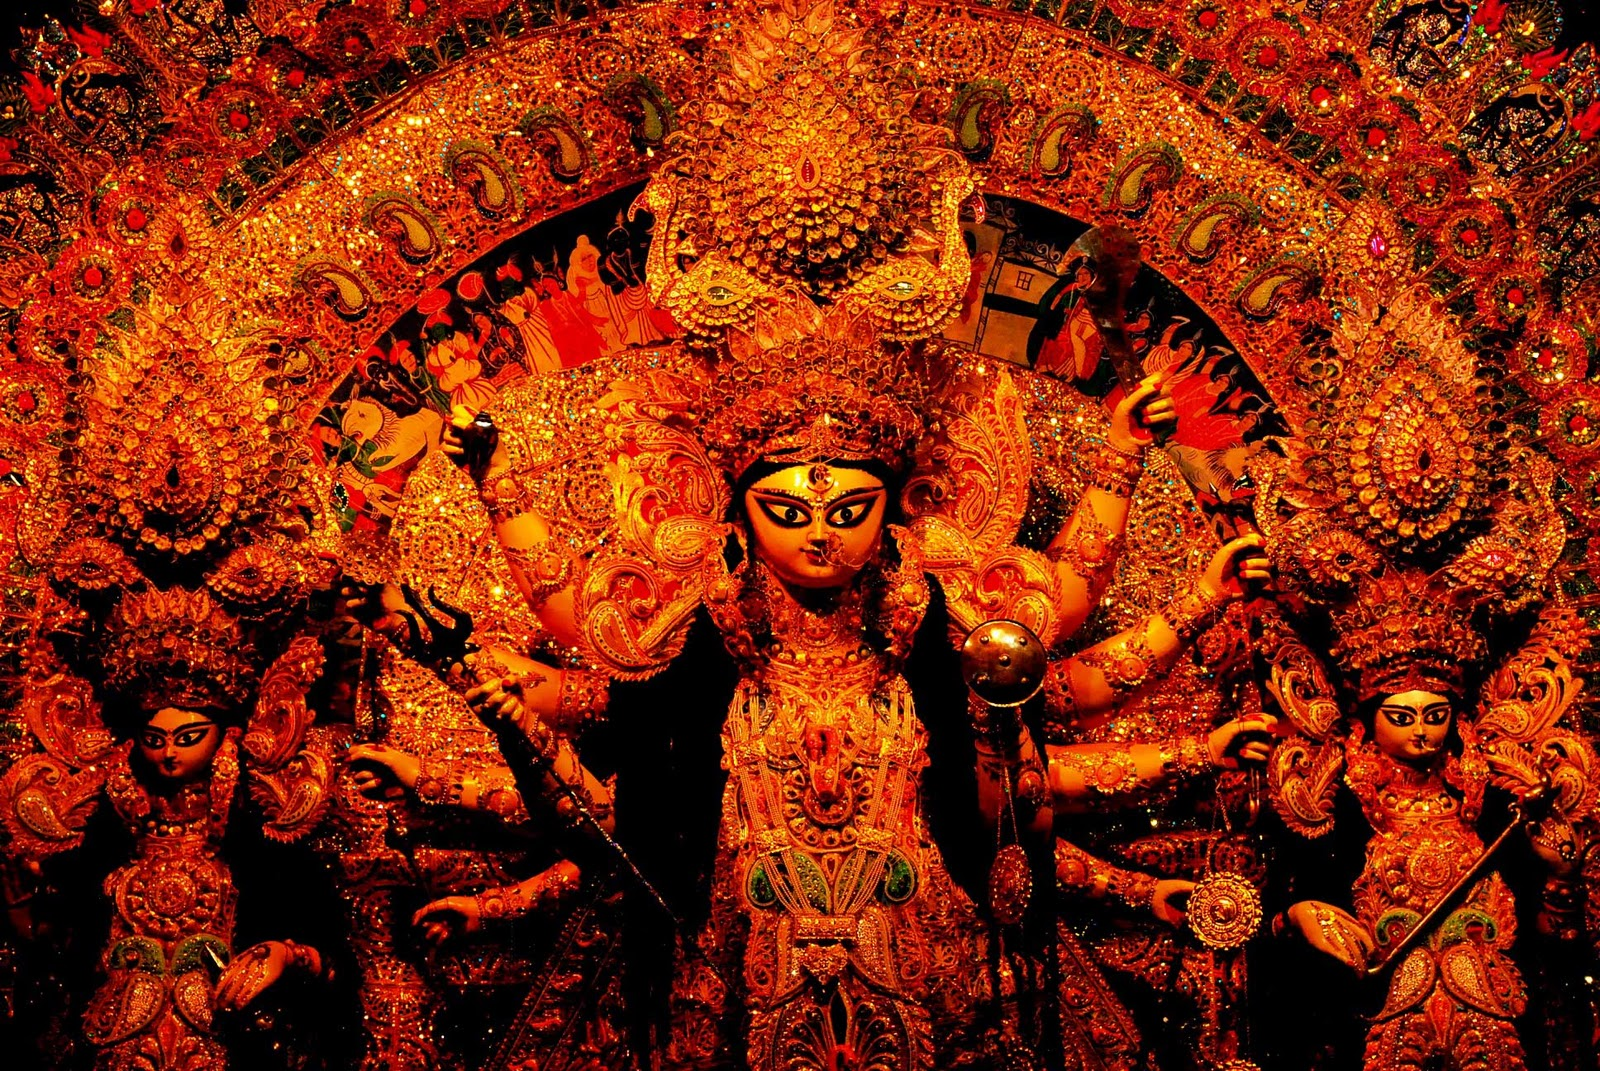 THE SLAYING OF MAHISASURA (a liberal translation from the original text)